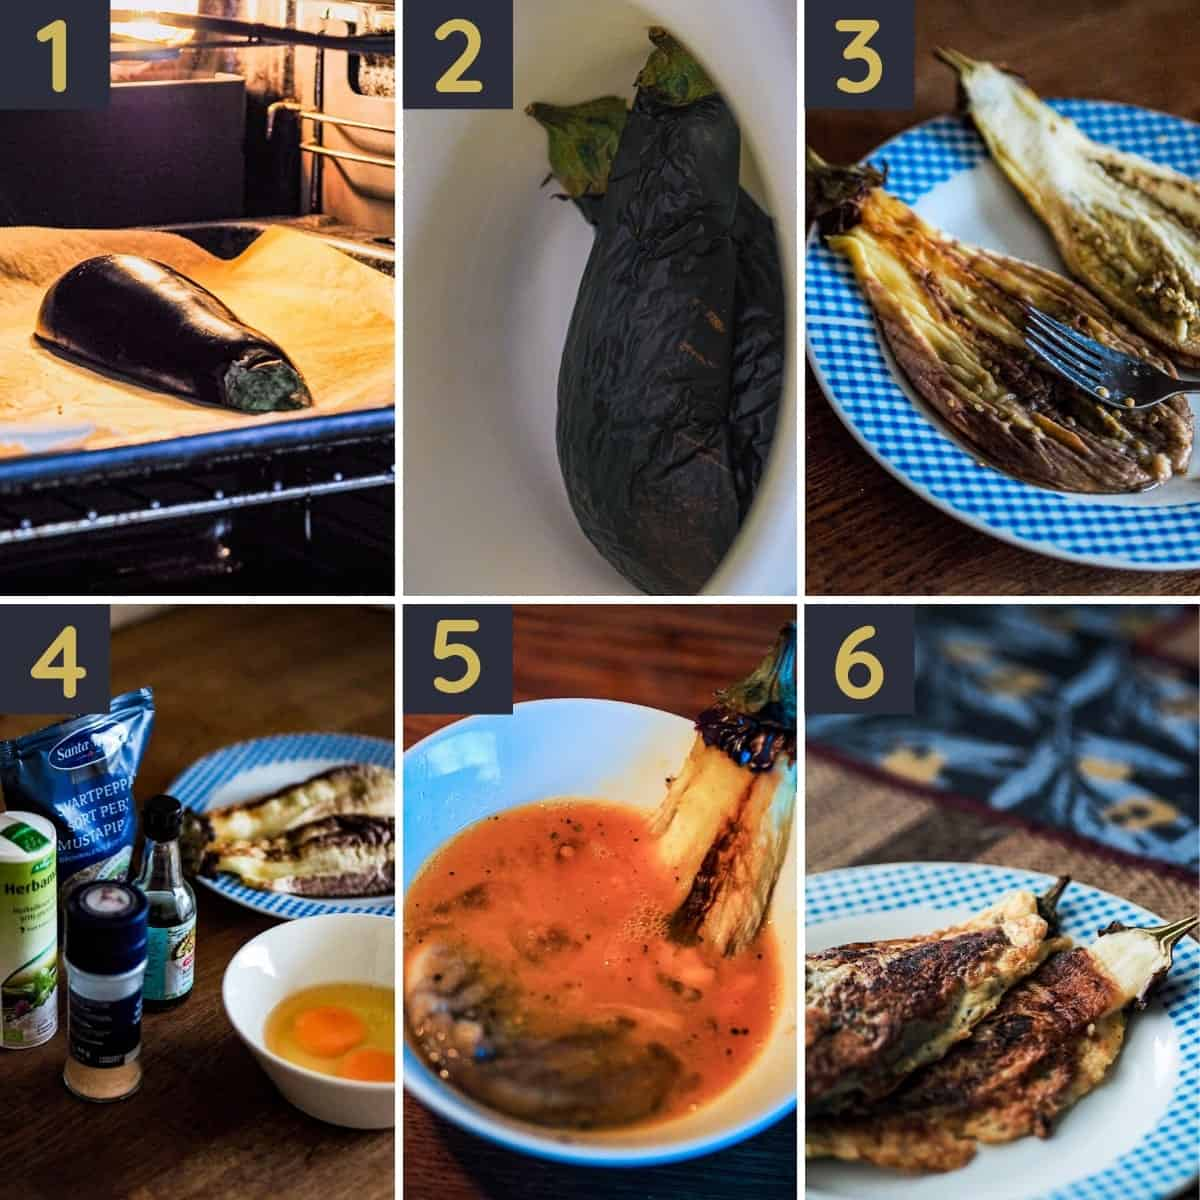 Step-by-step guide on how to make this Filipino eggplant omelet